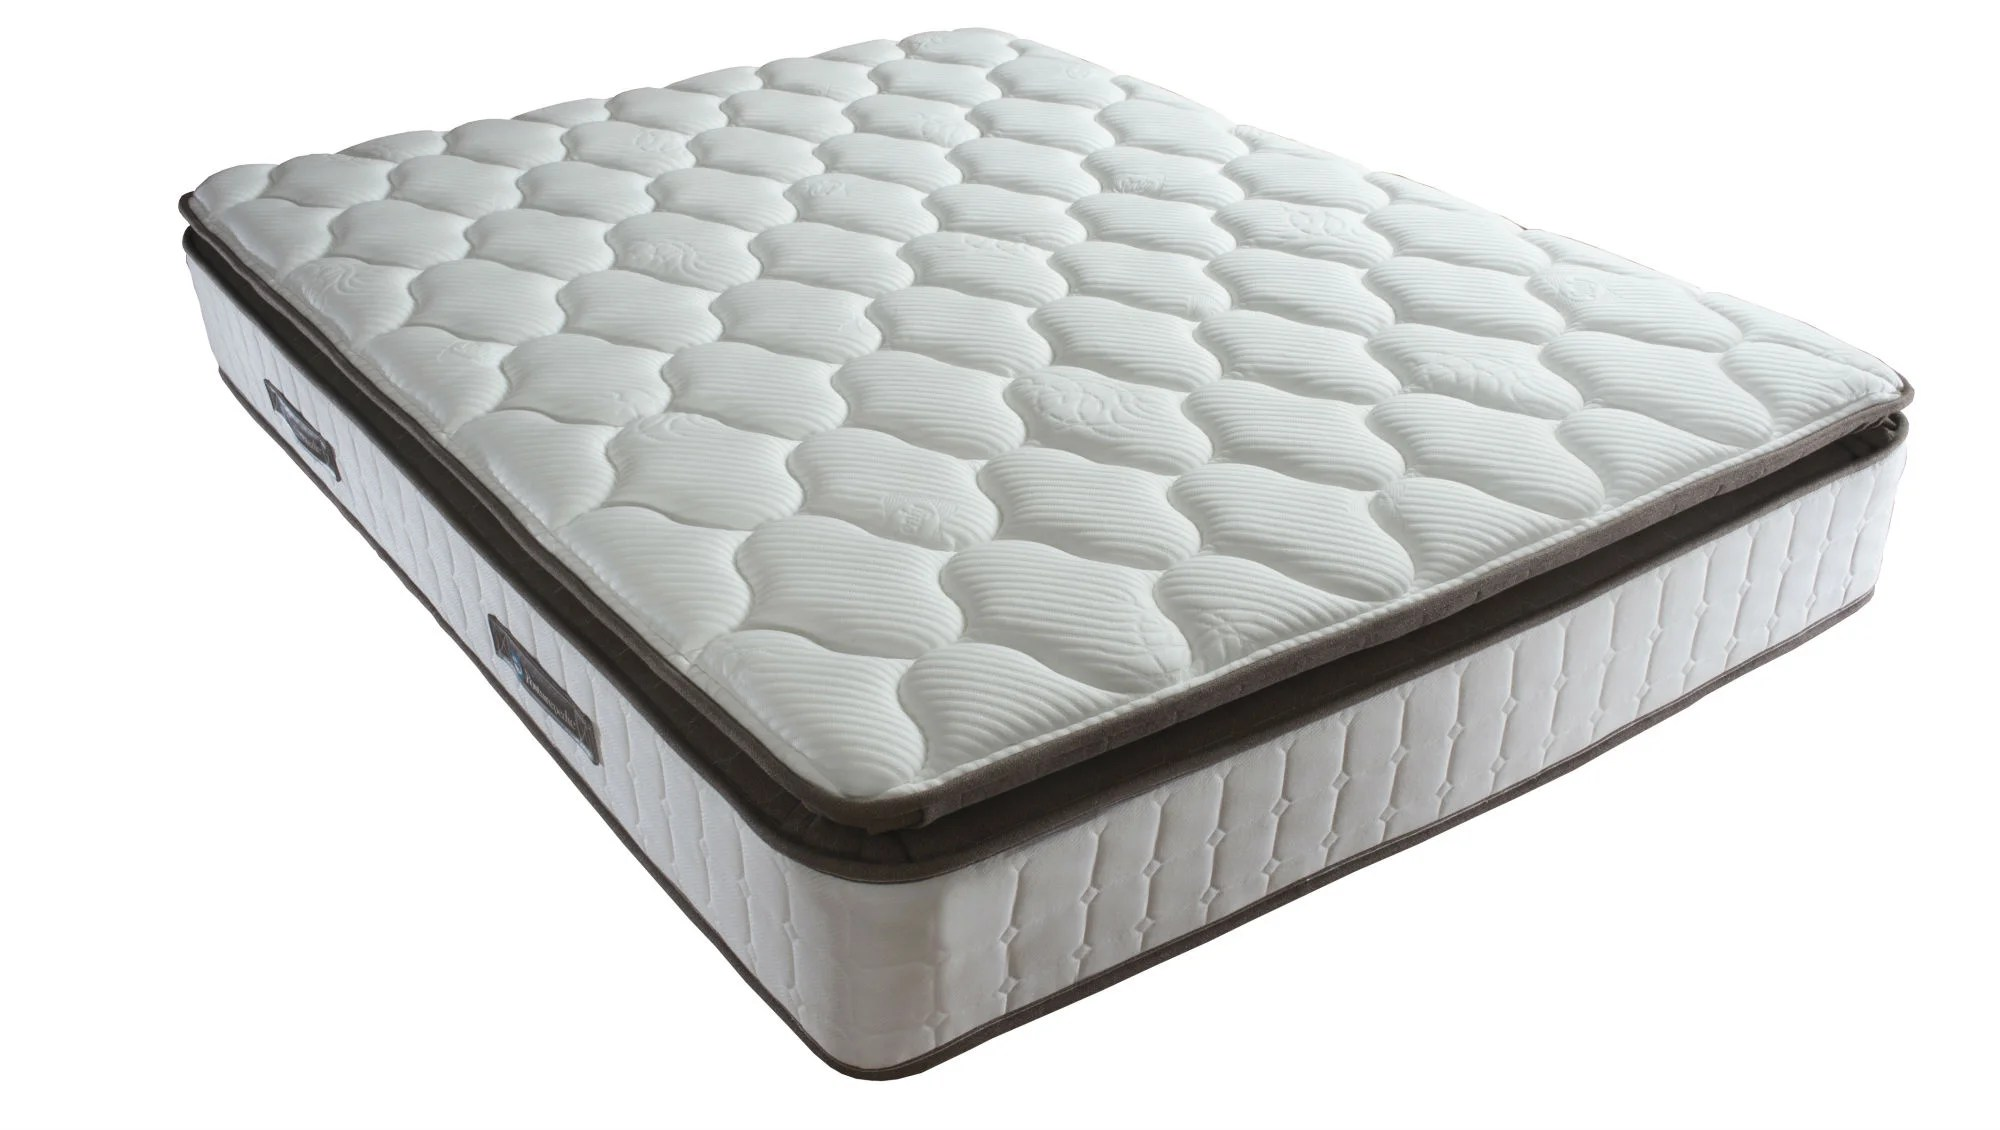 Best Traditional Mattress How To Choose A Mattress Tips On How To Buy The Best Mattress For